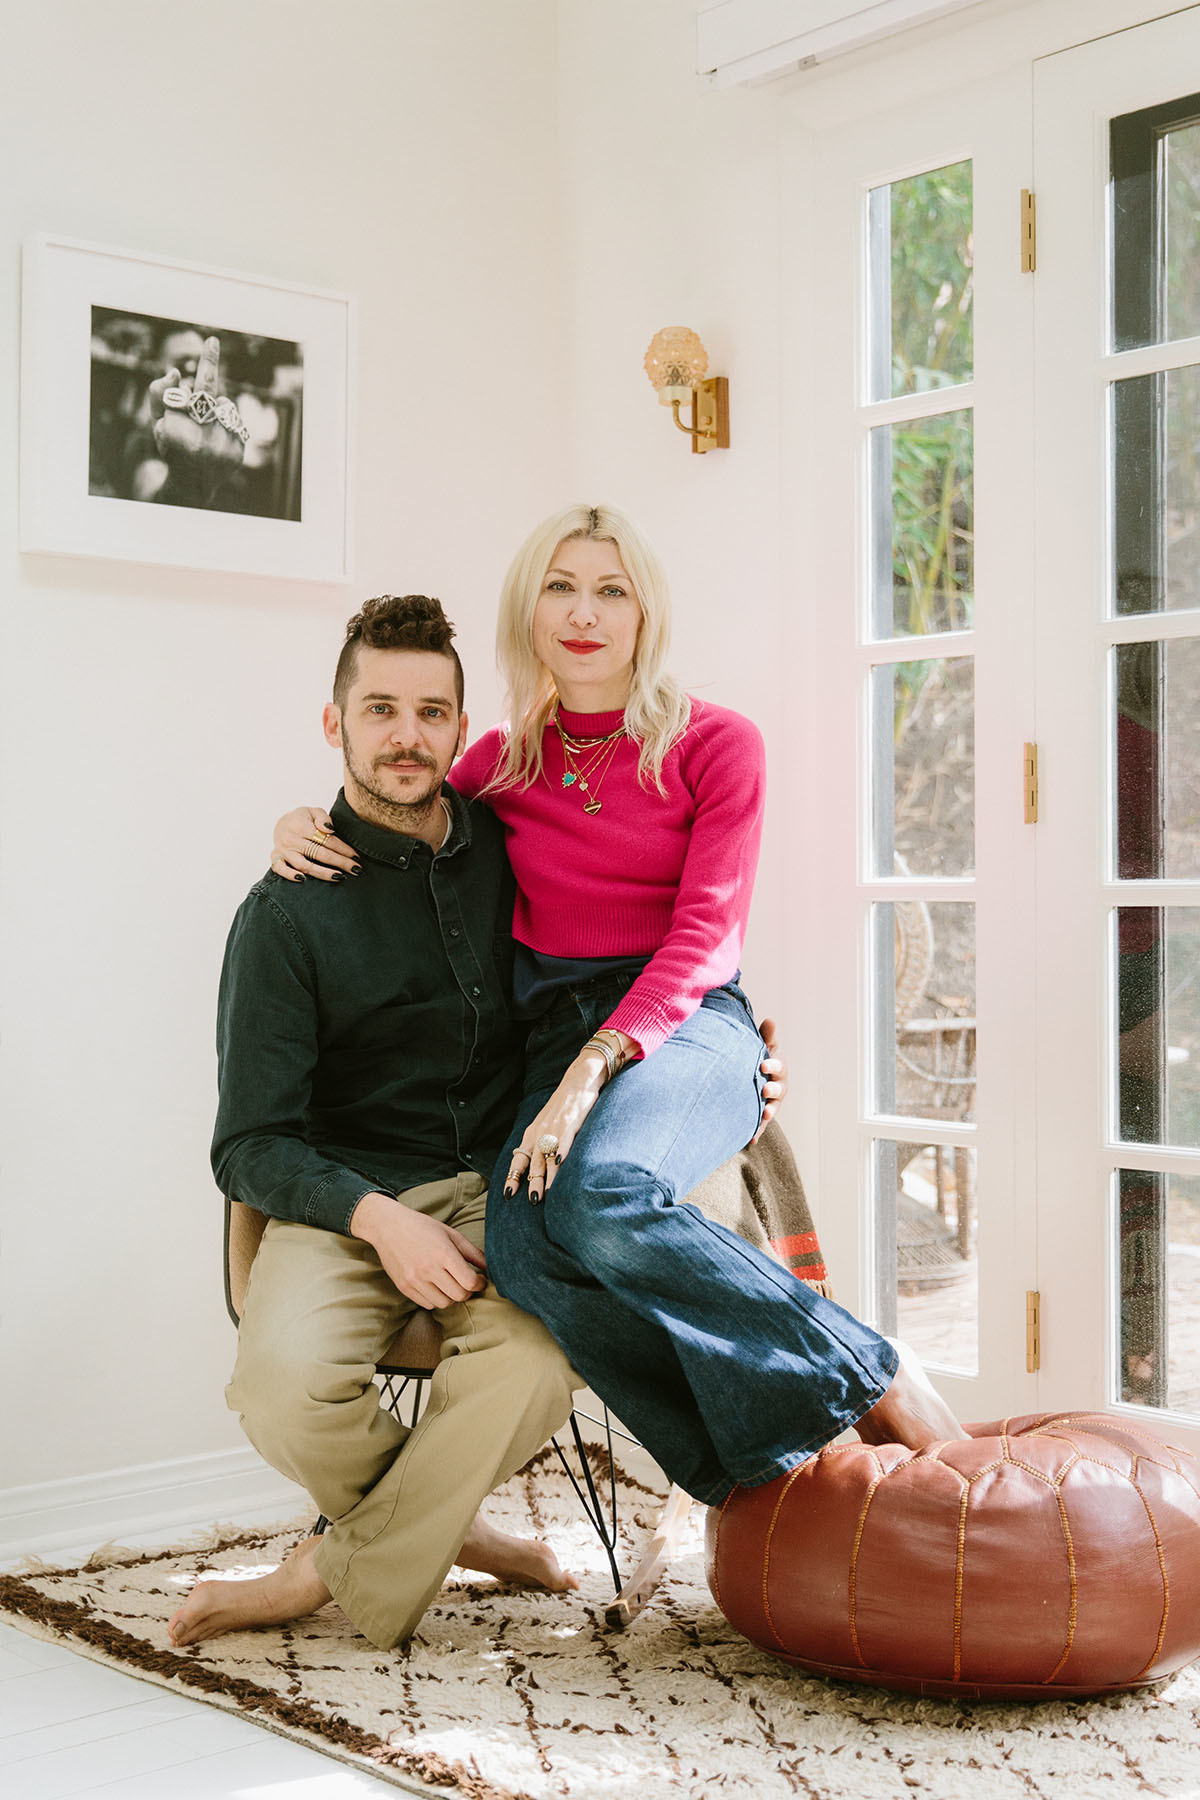 The Last Line founders share a passion for one-of-a-kind vintage furniture.